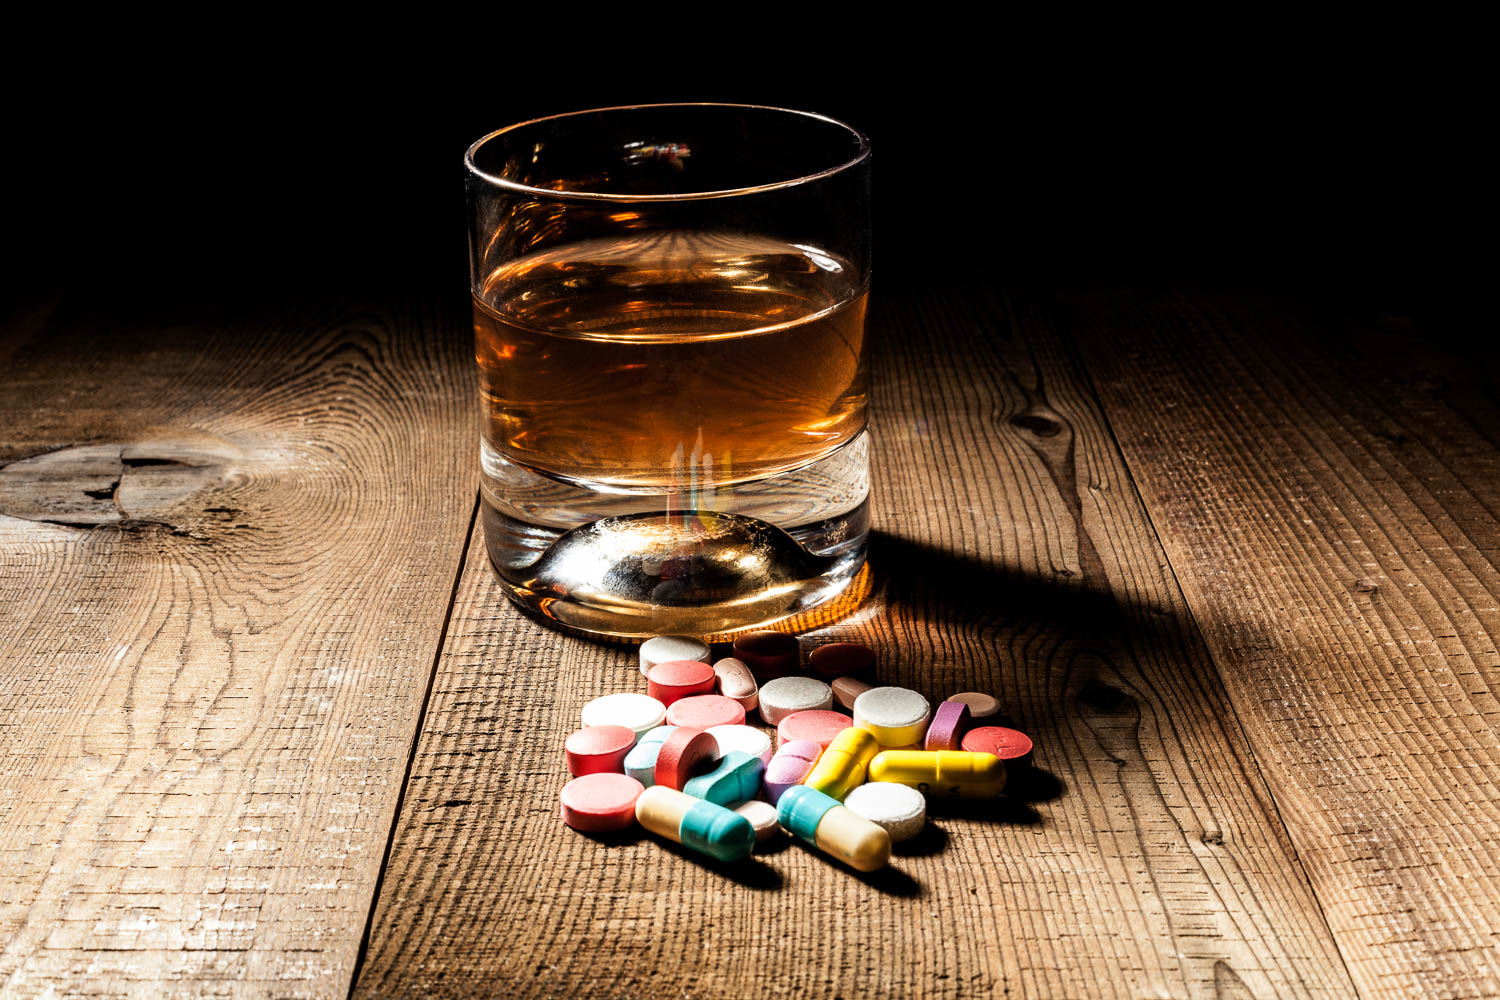 DUIs in Florida have to do with driving under the influence of alcohol or drugs - as pictured here with a glass of whiskey and pills on a wood table